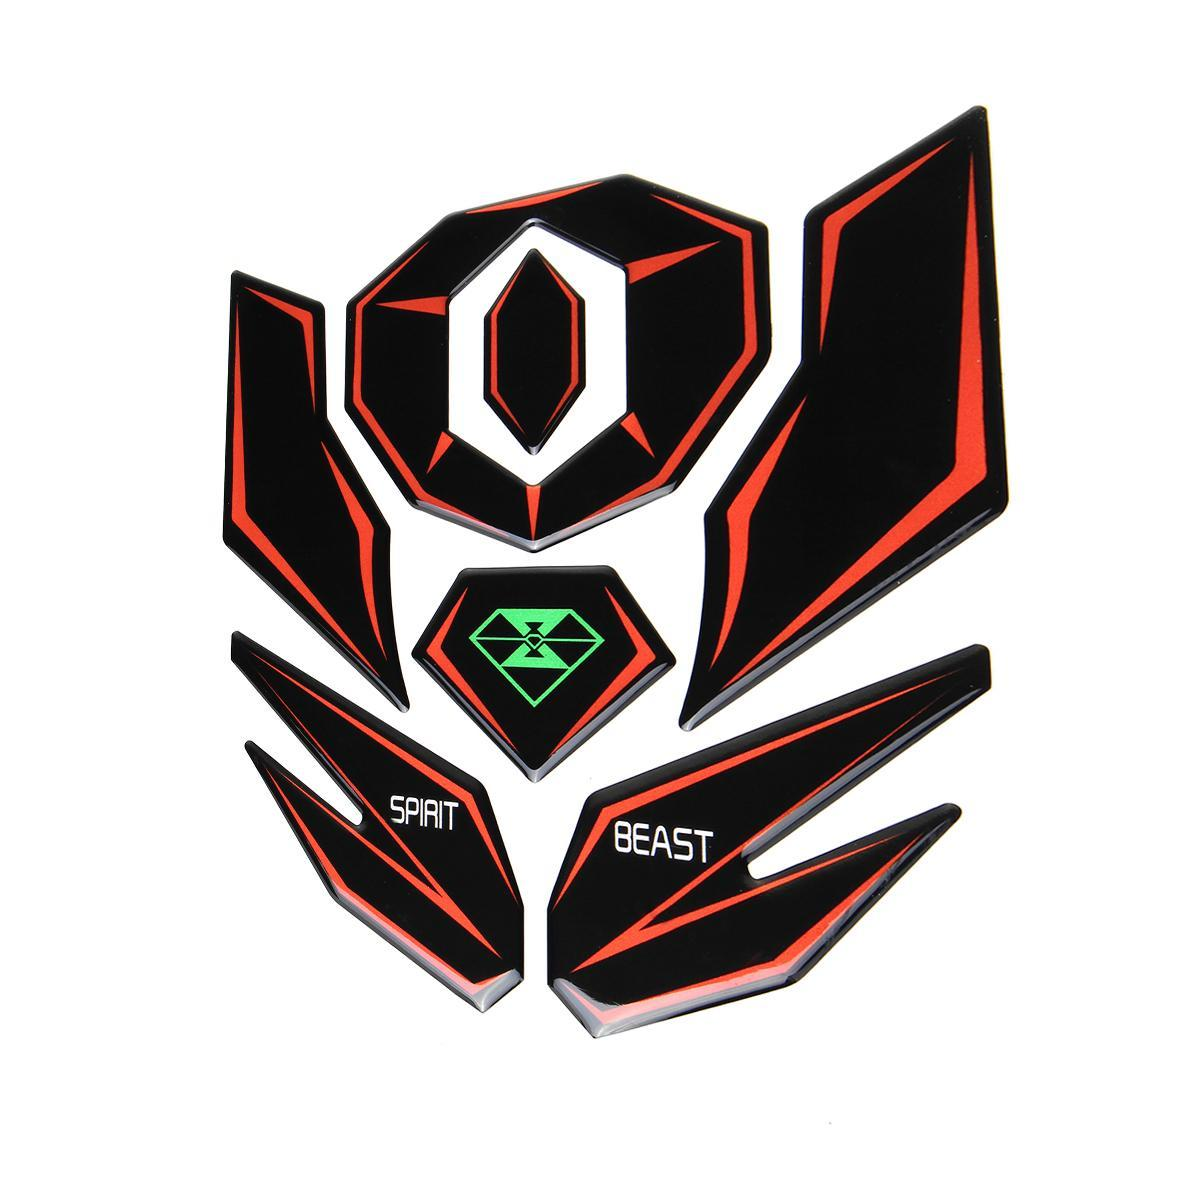 Product details of spirit beast reflective 3d motorcycle sticker moto gas fue l tank protector pad cover decoration decals for hon da yam aha etc (type 8)